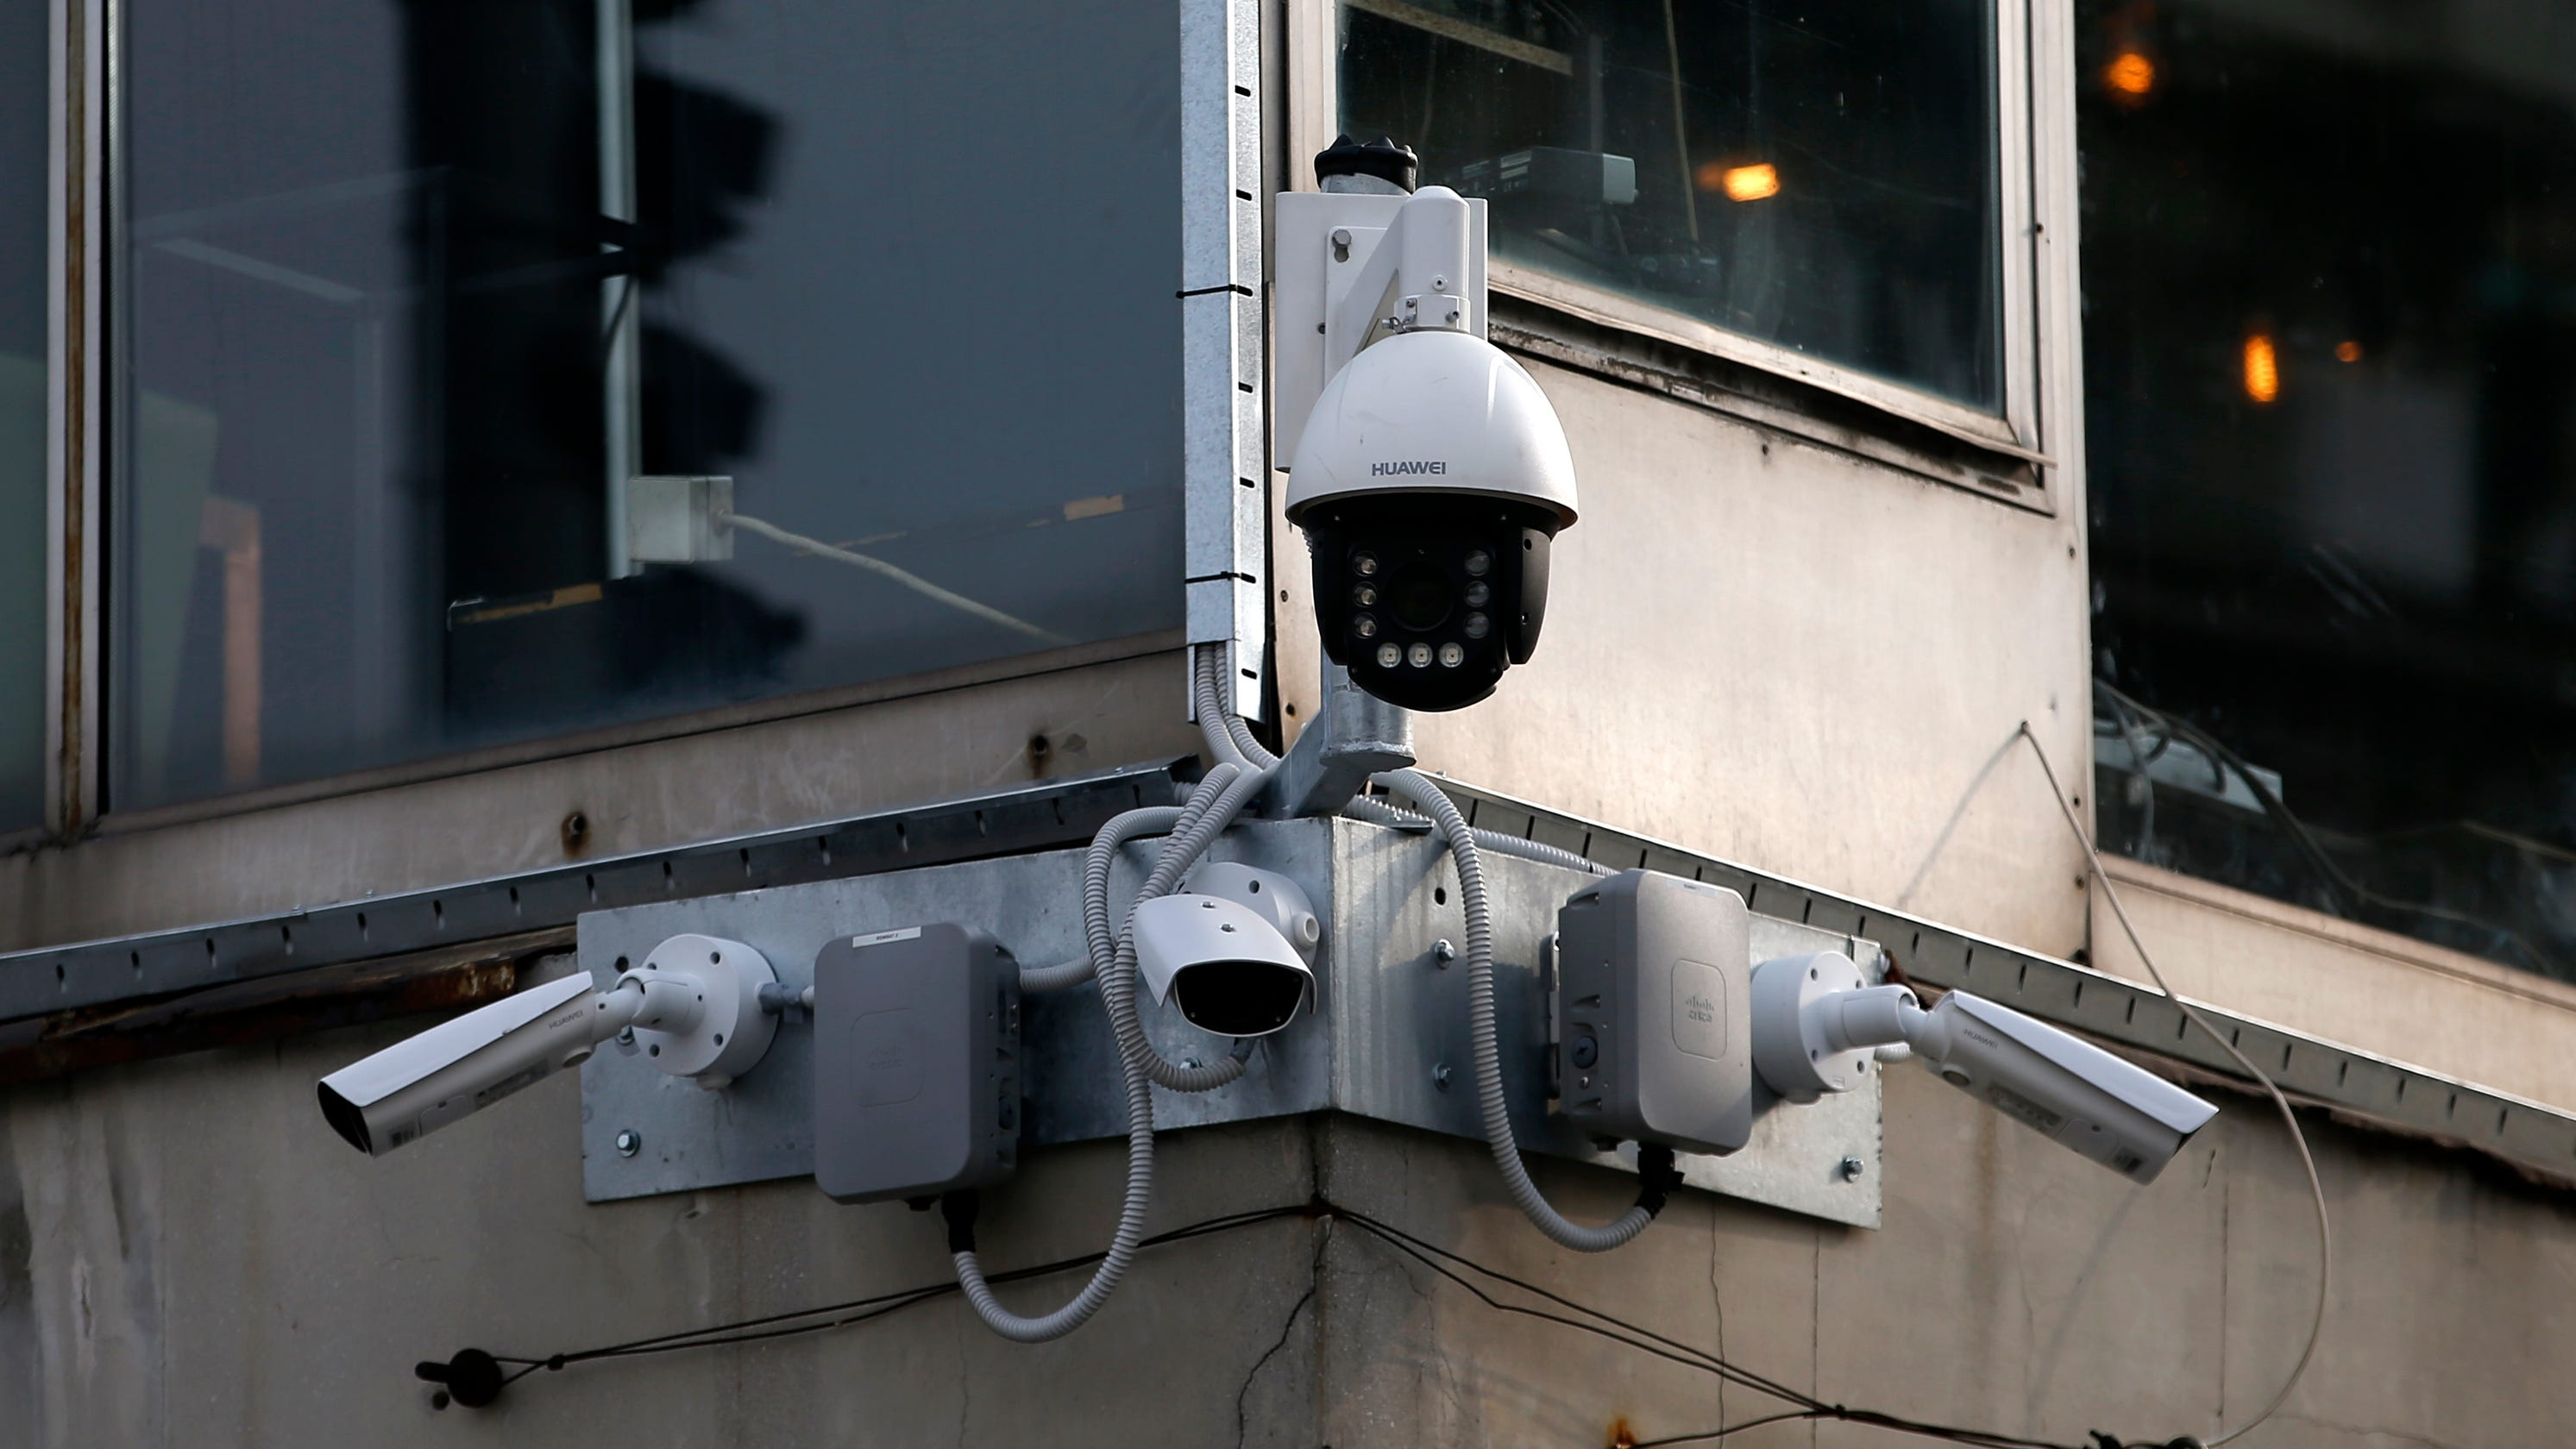 Chinese people-tracking cameras are spreading to nations vulnerable to human rights abuse